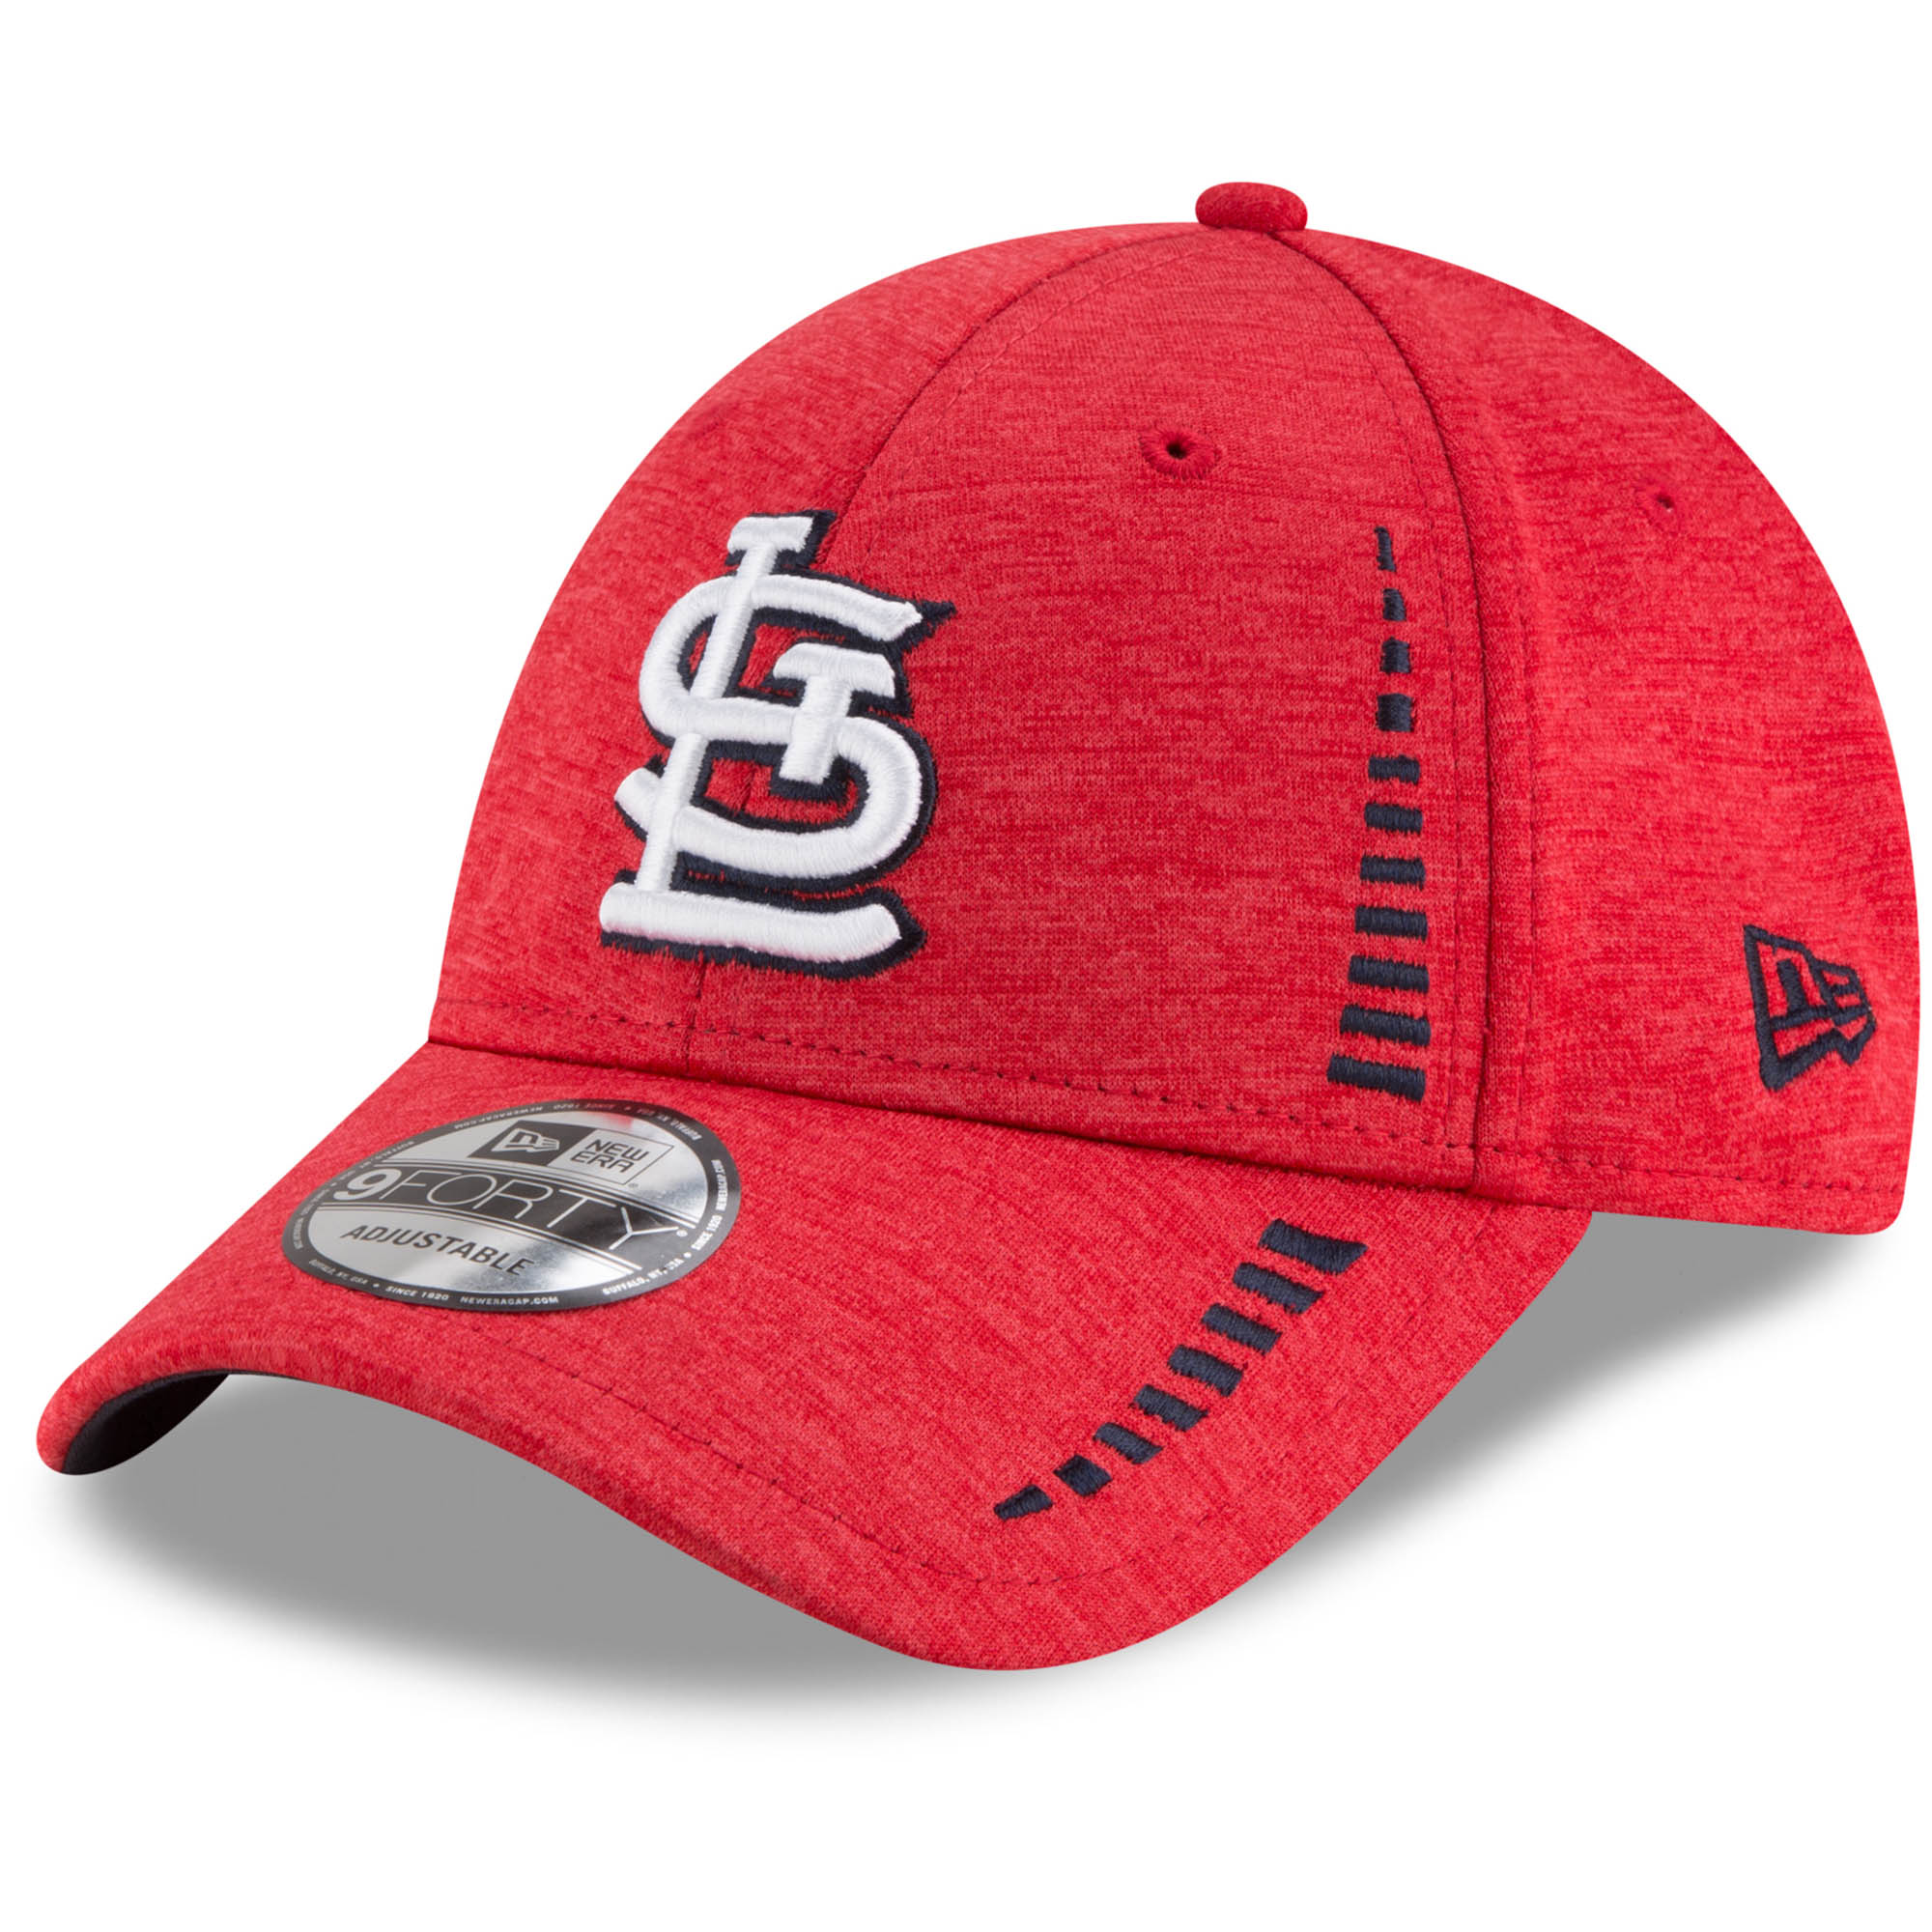 St. Louis Cardinals New Era Speed Shadow Tech 9FORTY Adjustable Hat - Red - OSFA